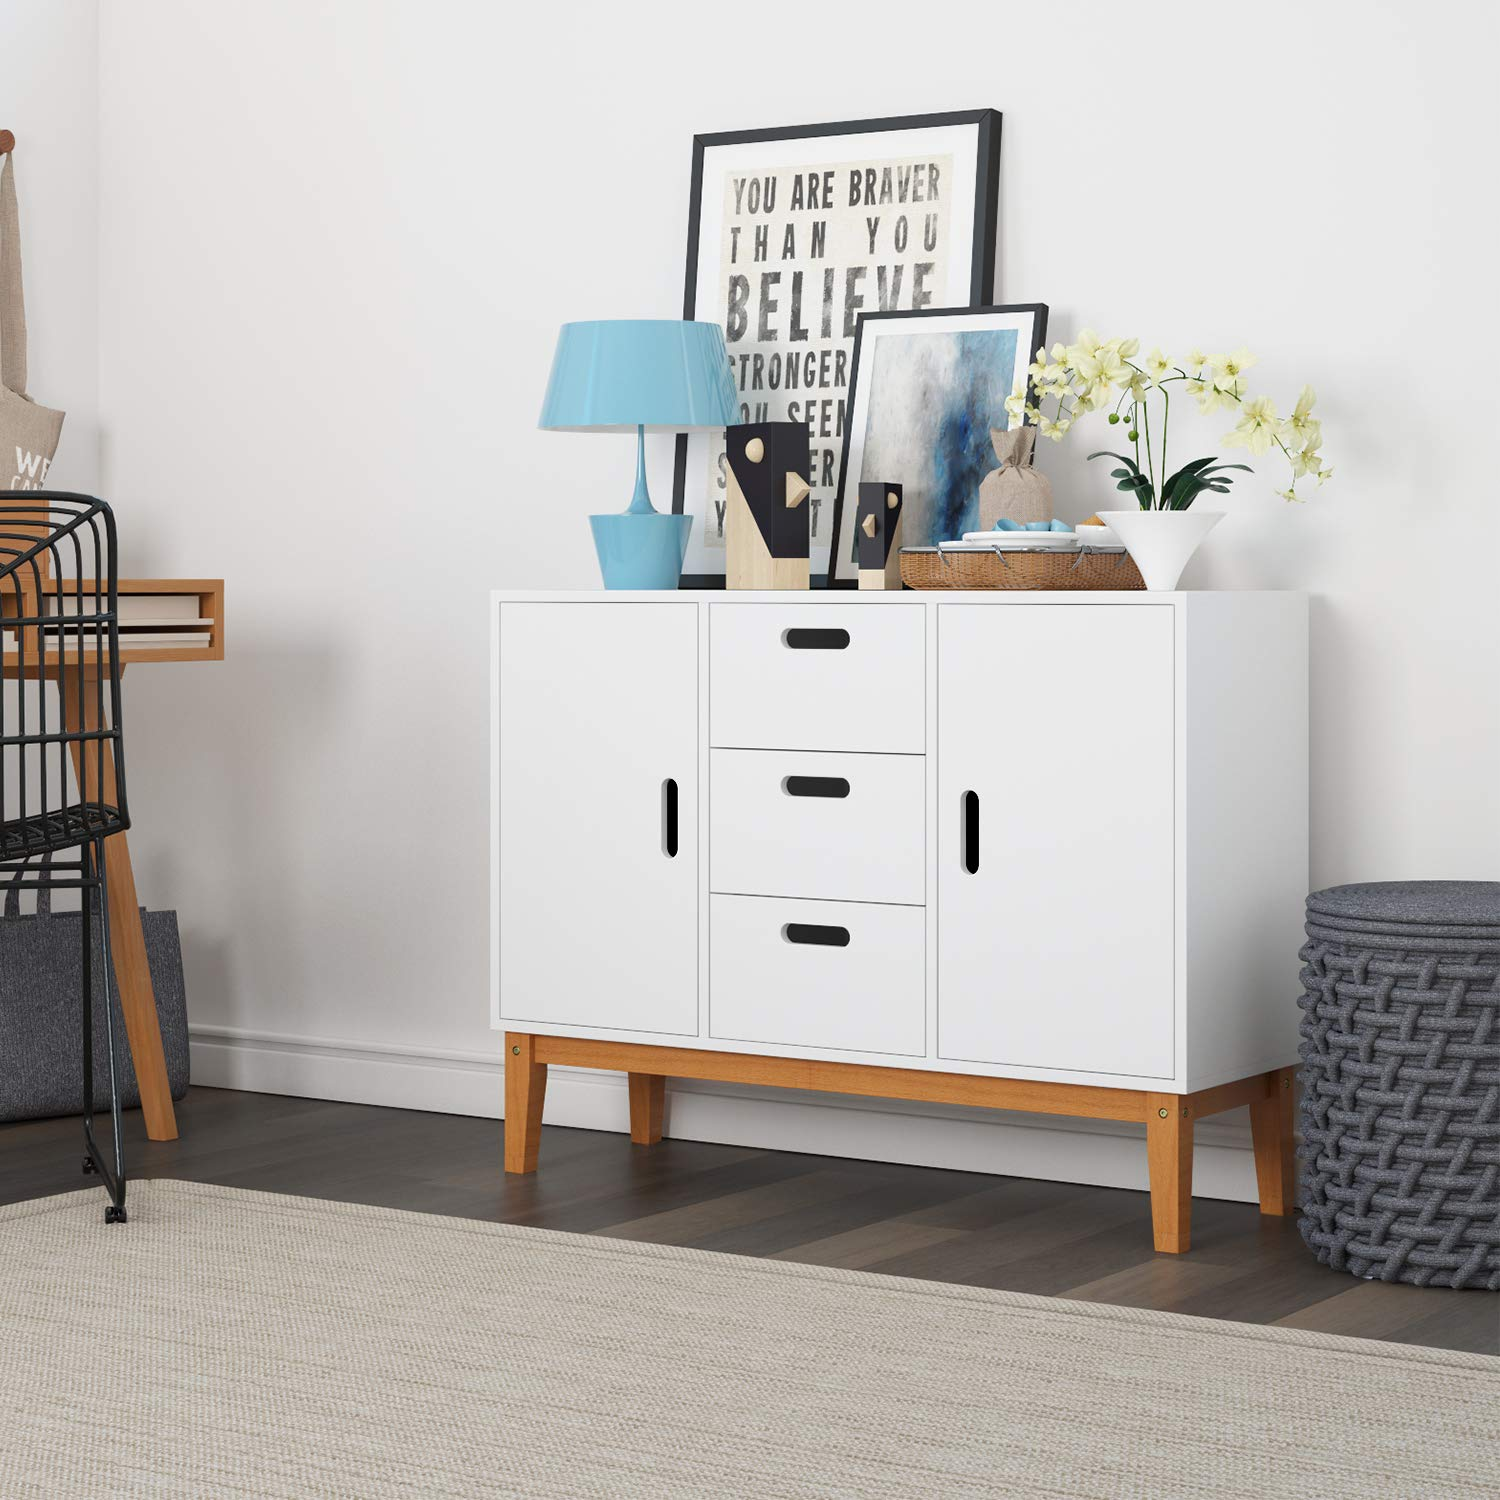 HOMECHO Floor Buffet Sideboard Storage Cabinet Freestanding Console Table Cupboard Chest 2 Door, 3 Drawers and 2 Inside Adjustment Shelf for Hallway, Living Room and Kitchen White Color HMC-MD-004 by HOMECHO (Image #7)